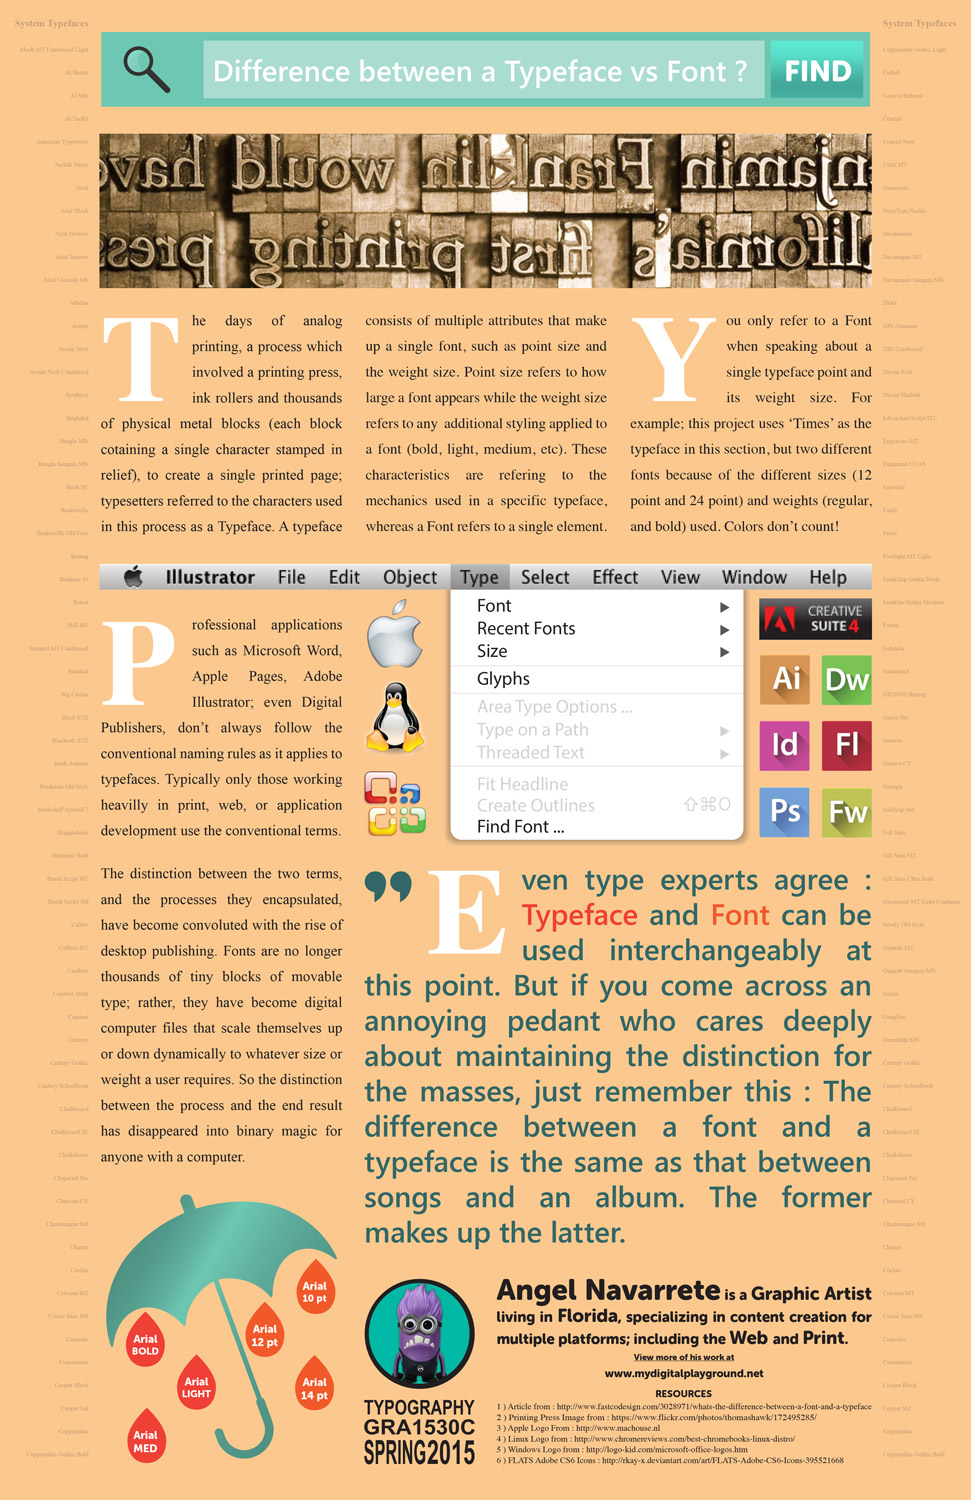 Typeface vs Font : Original layout and design.